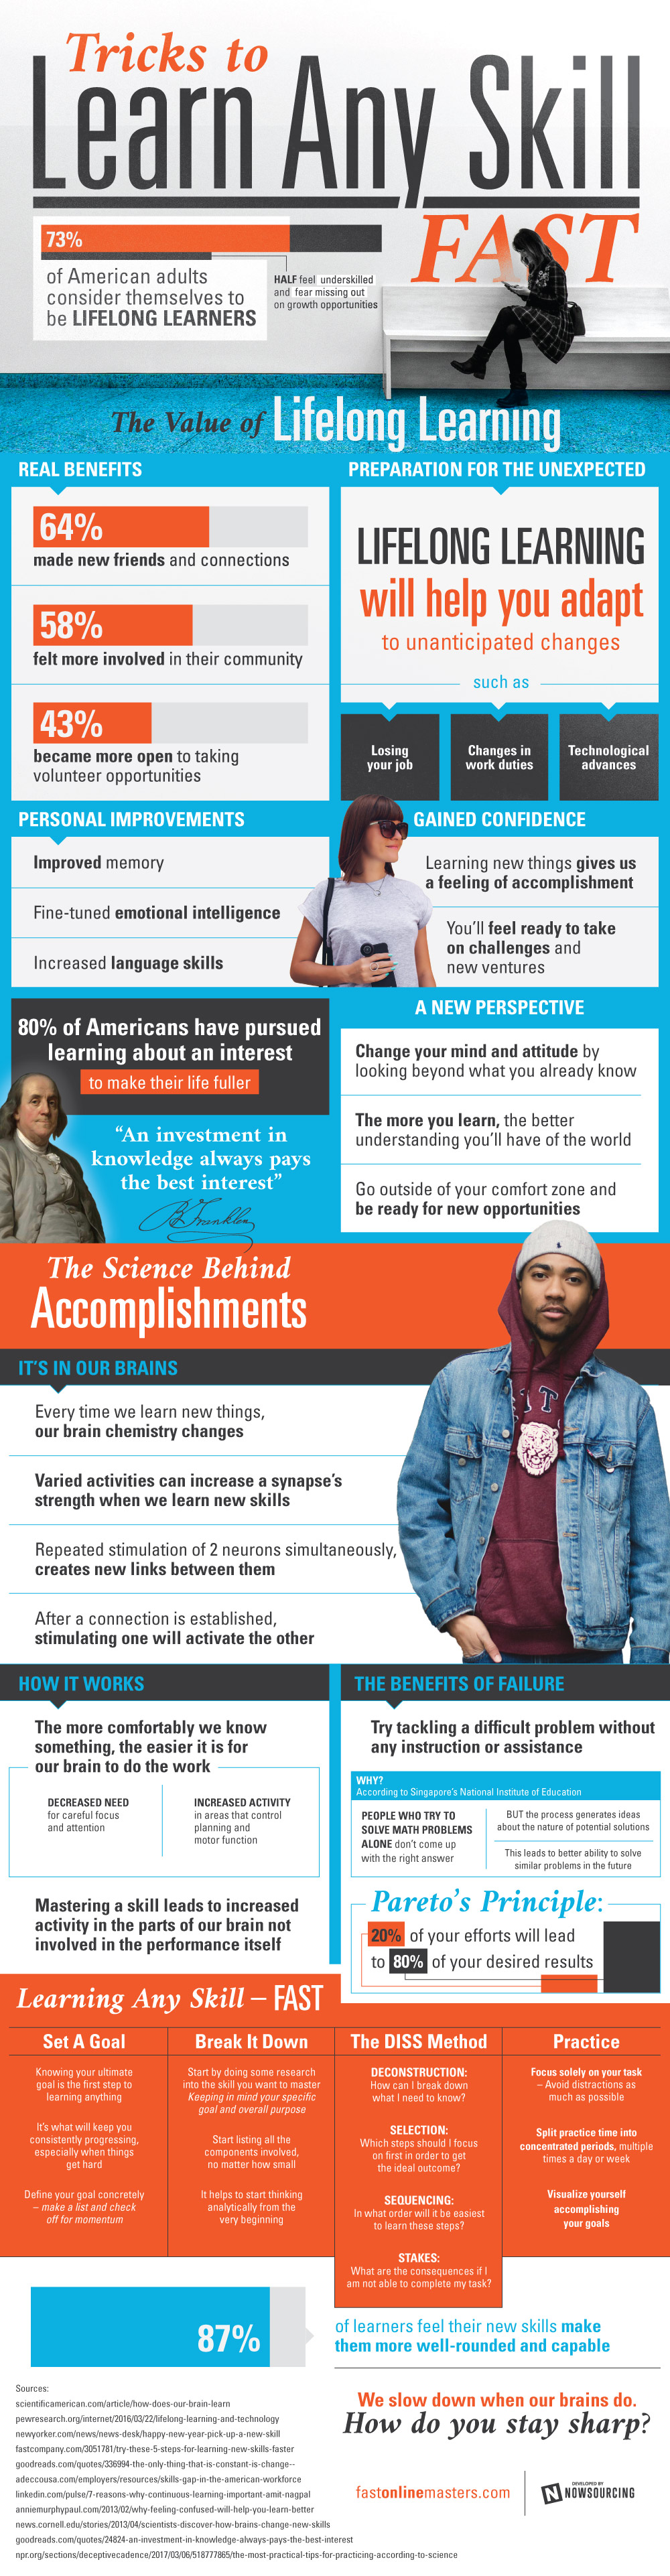 Lifelong Learning: Benefits and Advantages You Need to Know [Infographic]